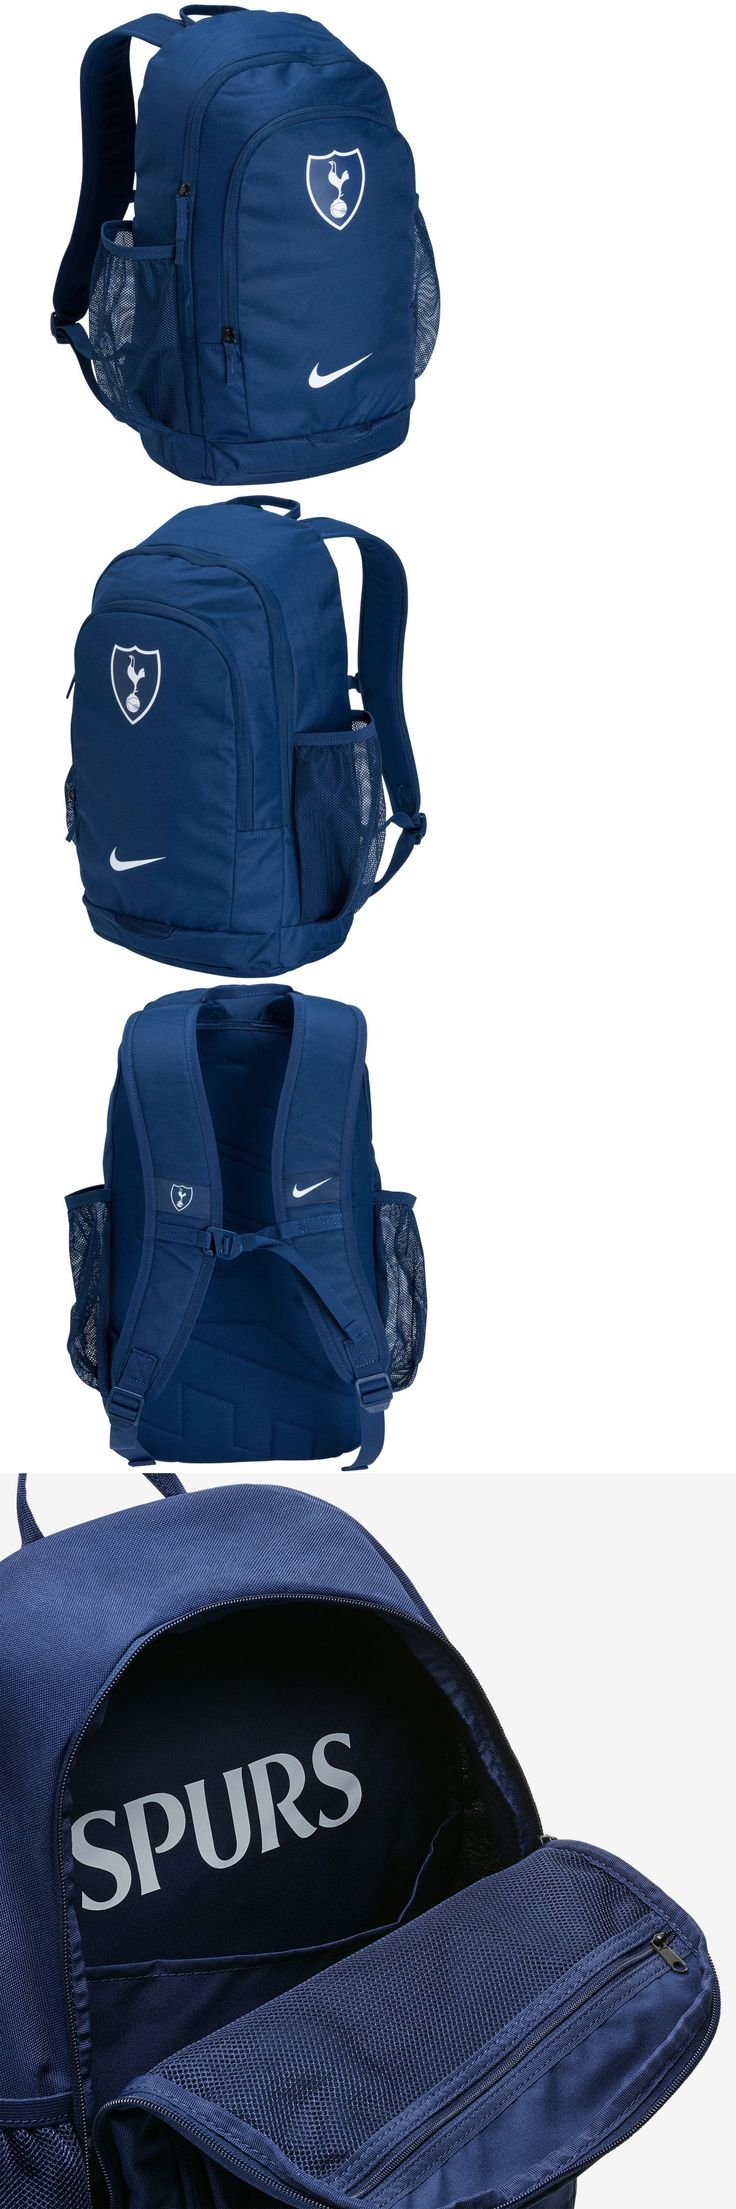 Other Soccer 2914: Nike Tiempo Totthenham Hotspur 2017- 2018 Stadium Soccer School Gym Bag Backpack -> BUY IT NOW ONLY: $69.99 on eBay!